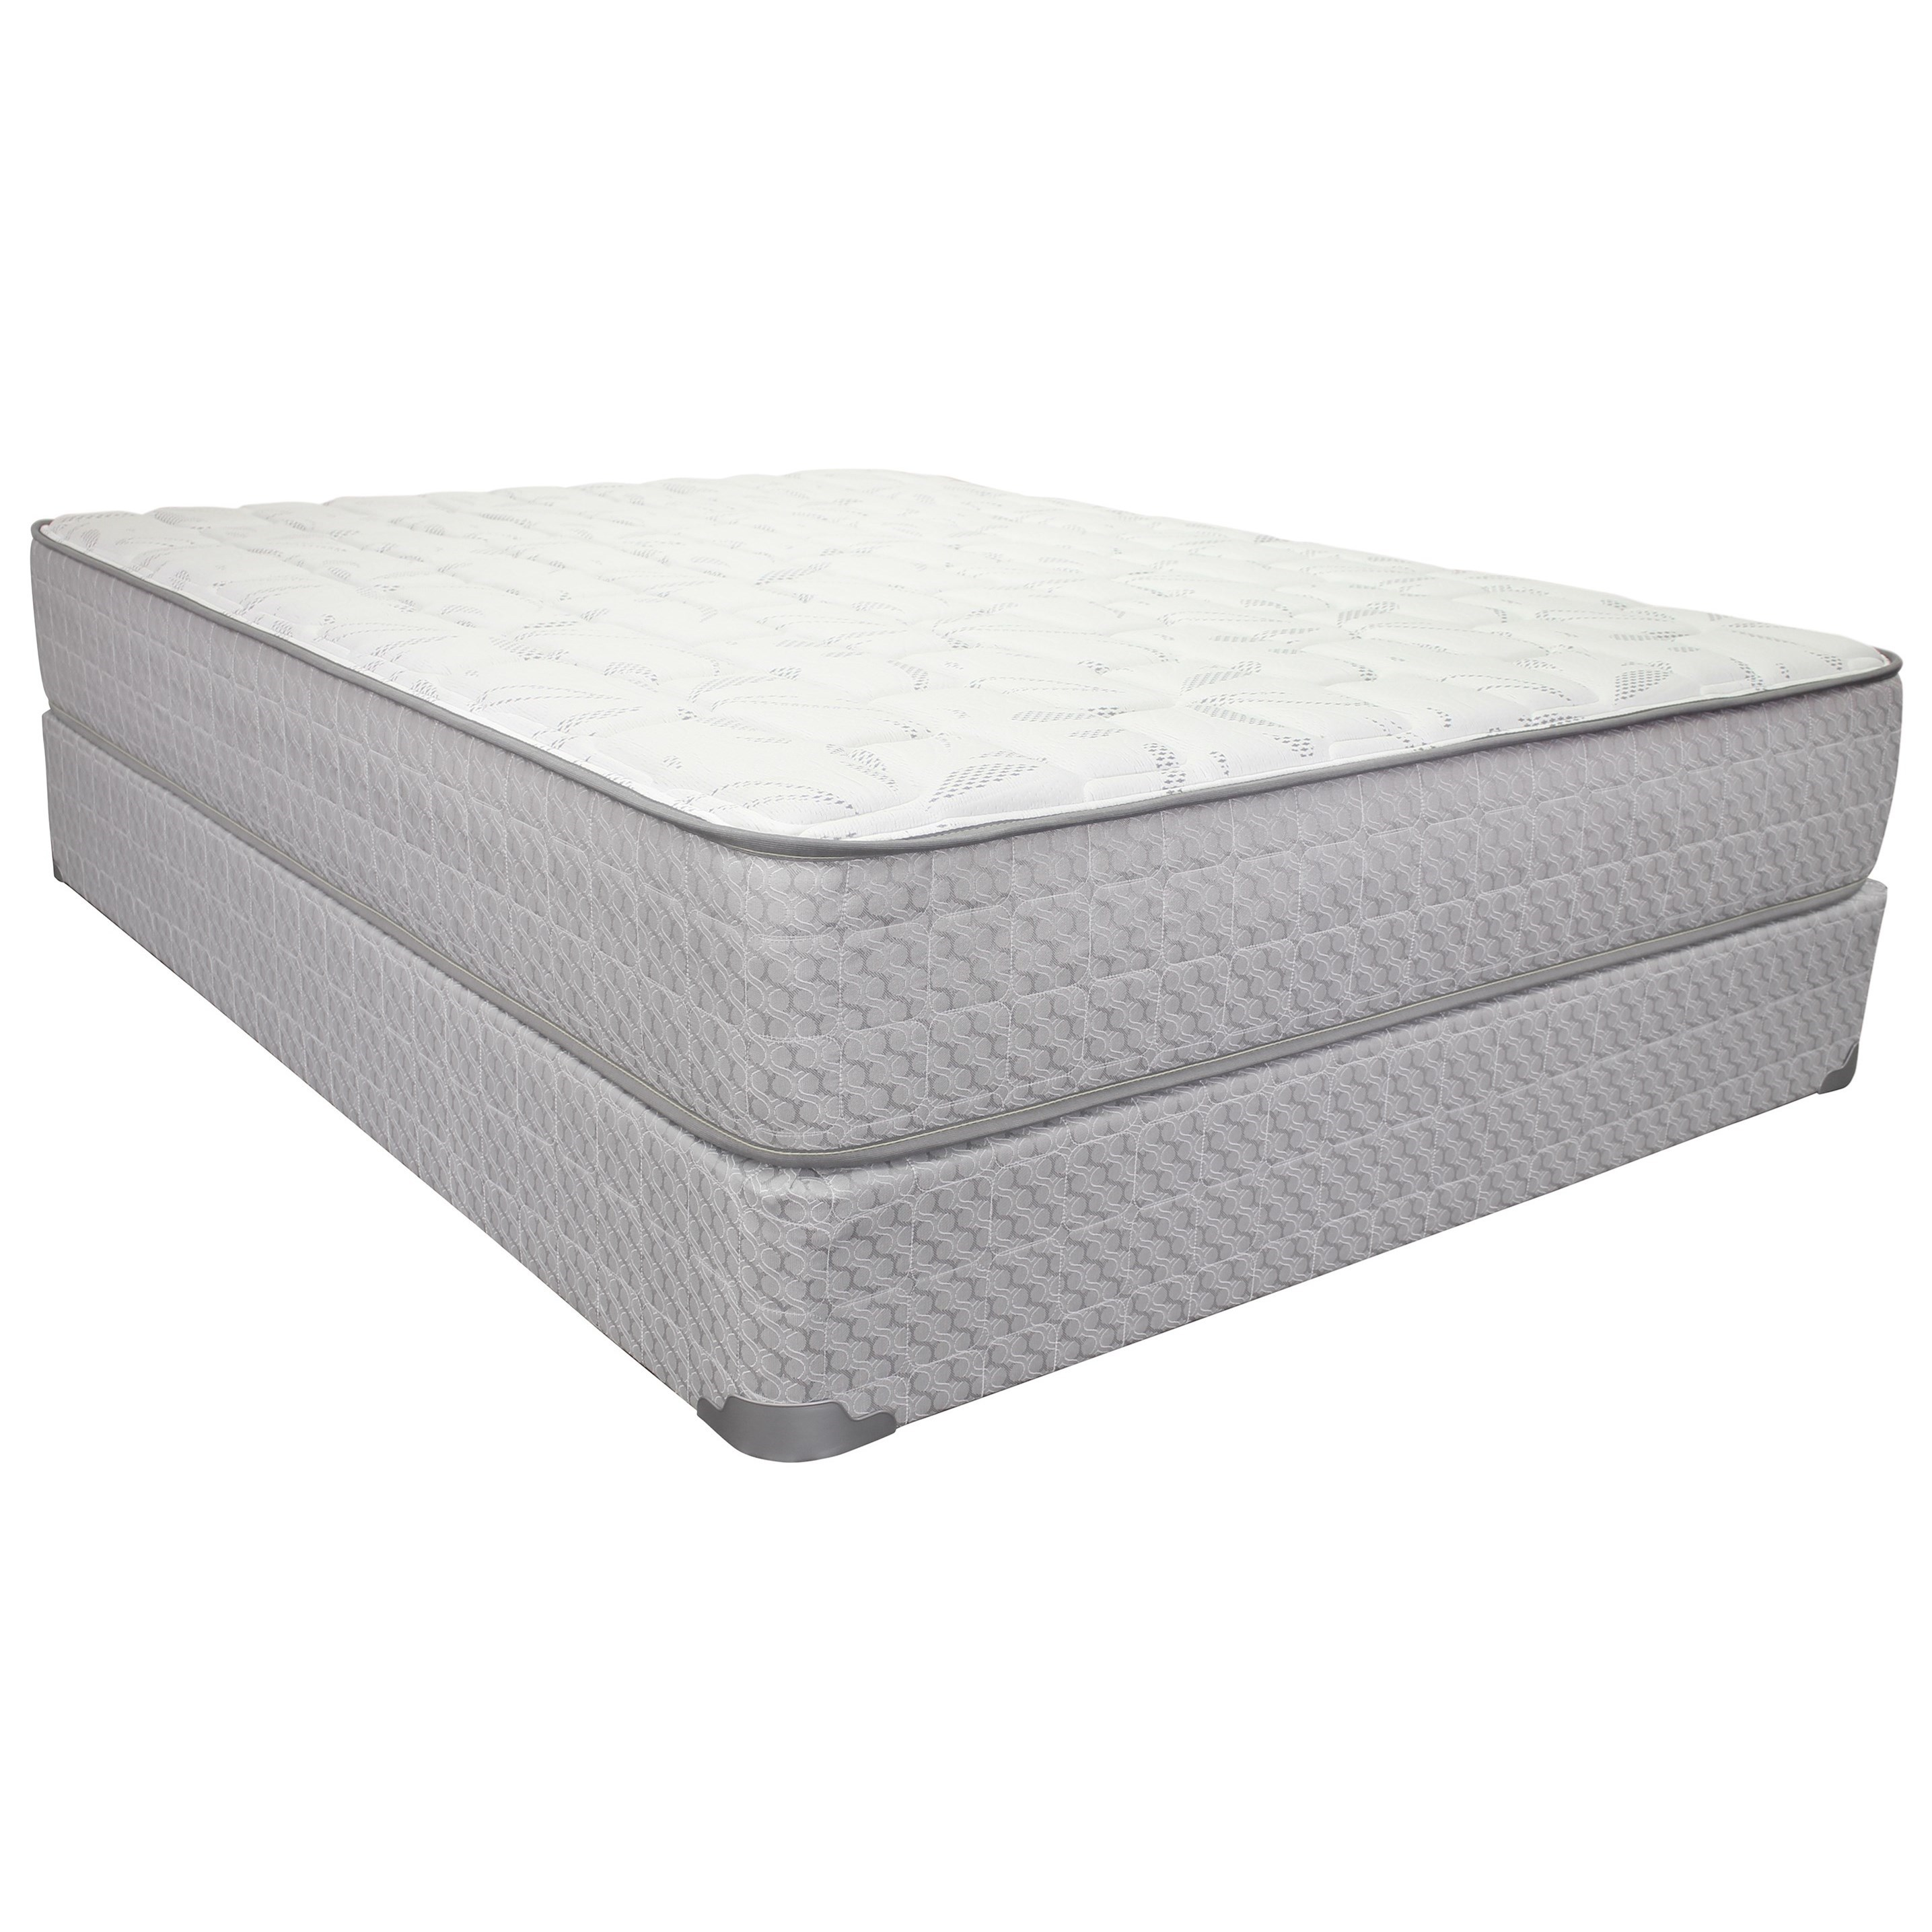 "Full 12"" Firm Innerspring Mattress Set"